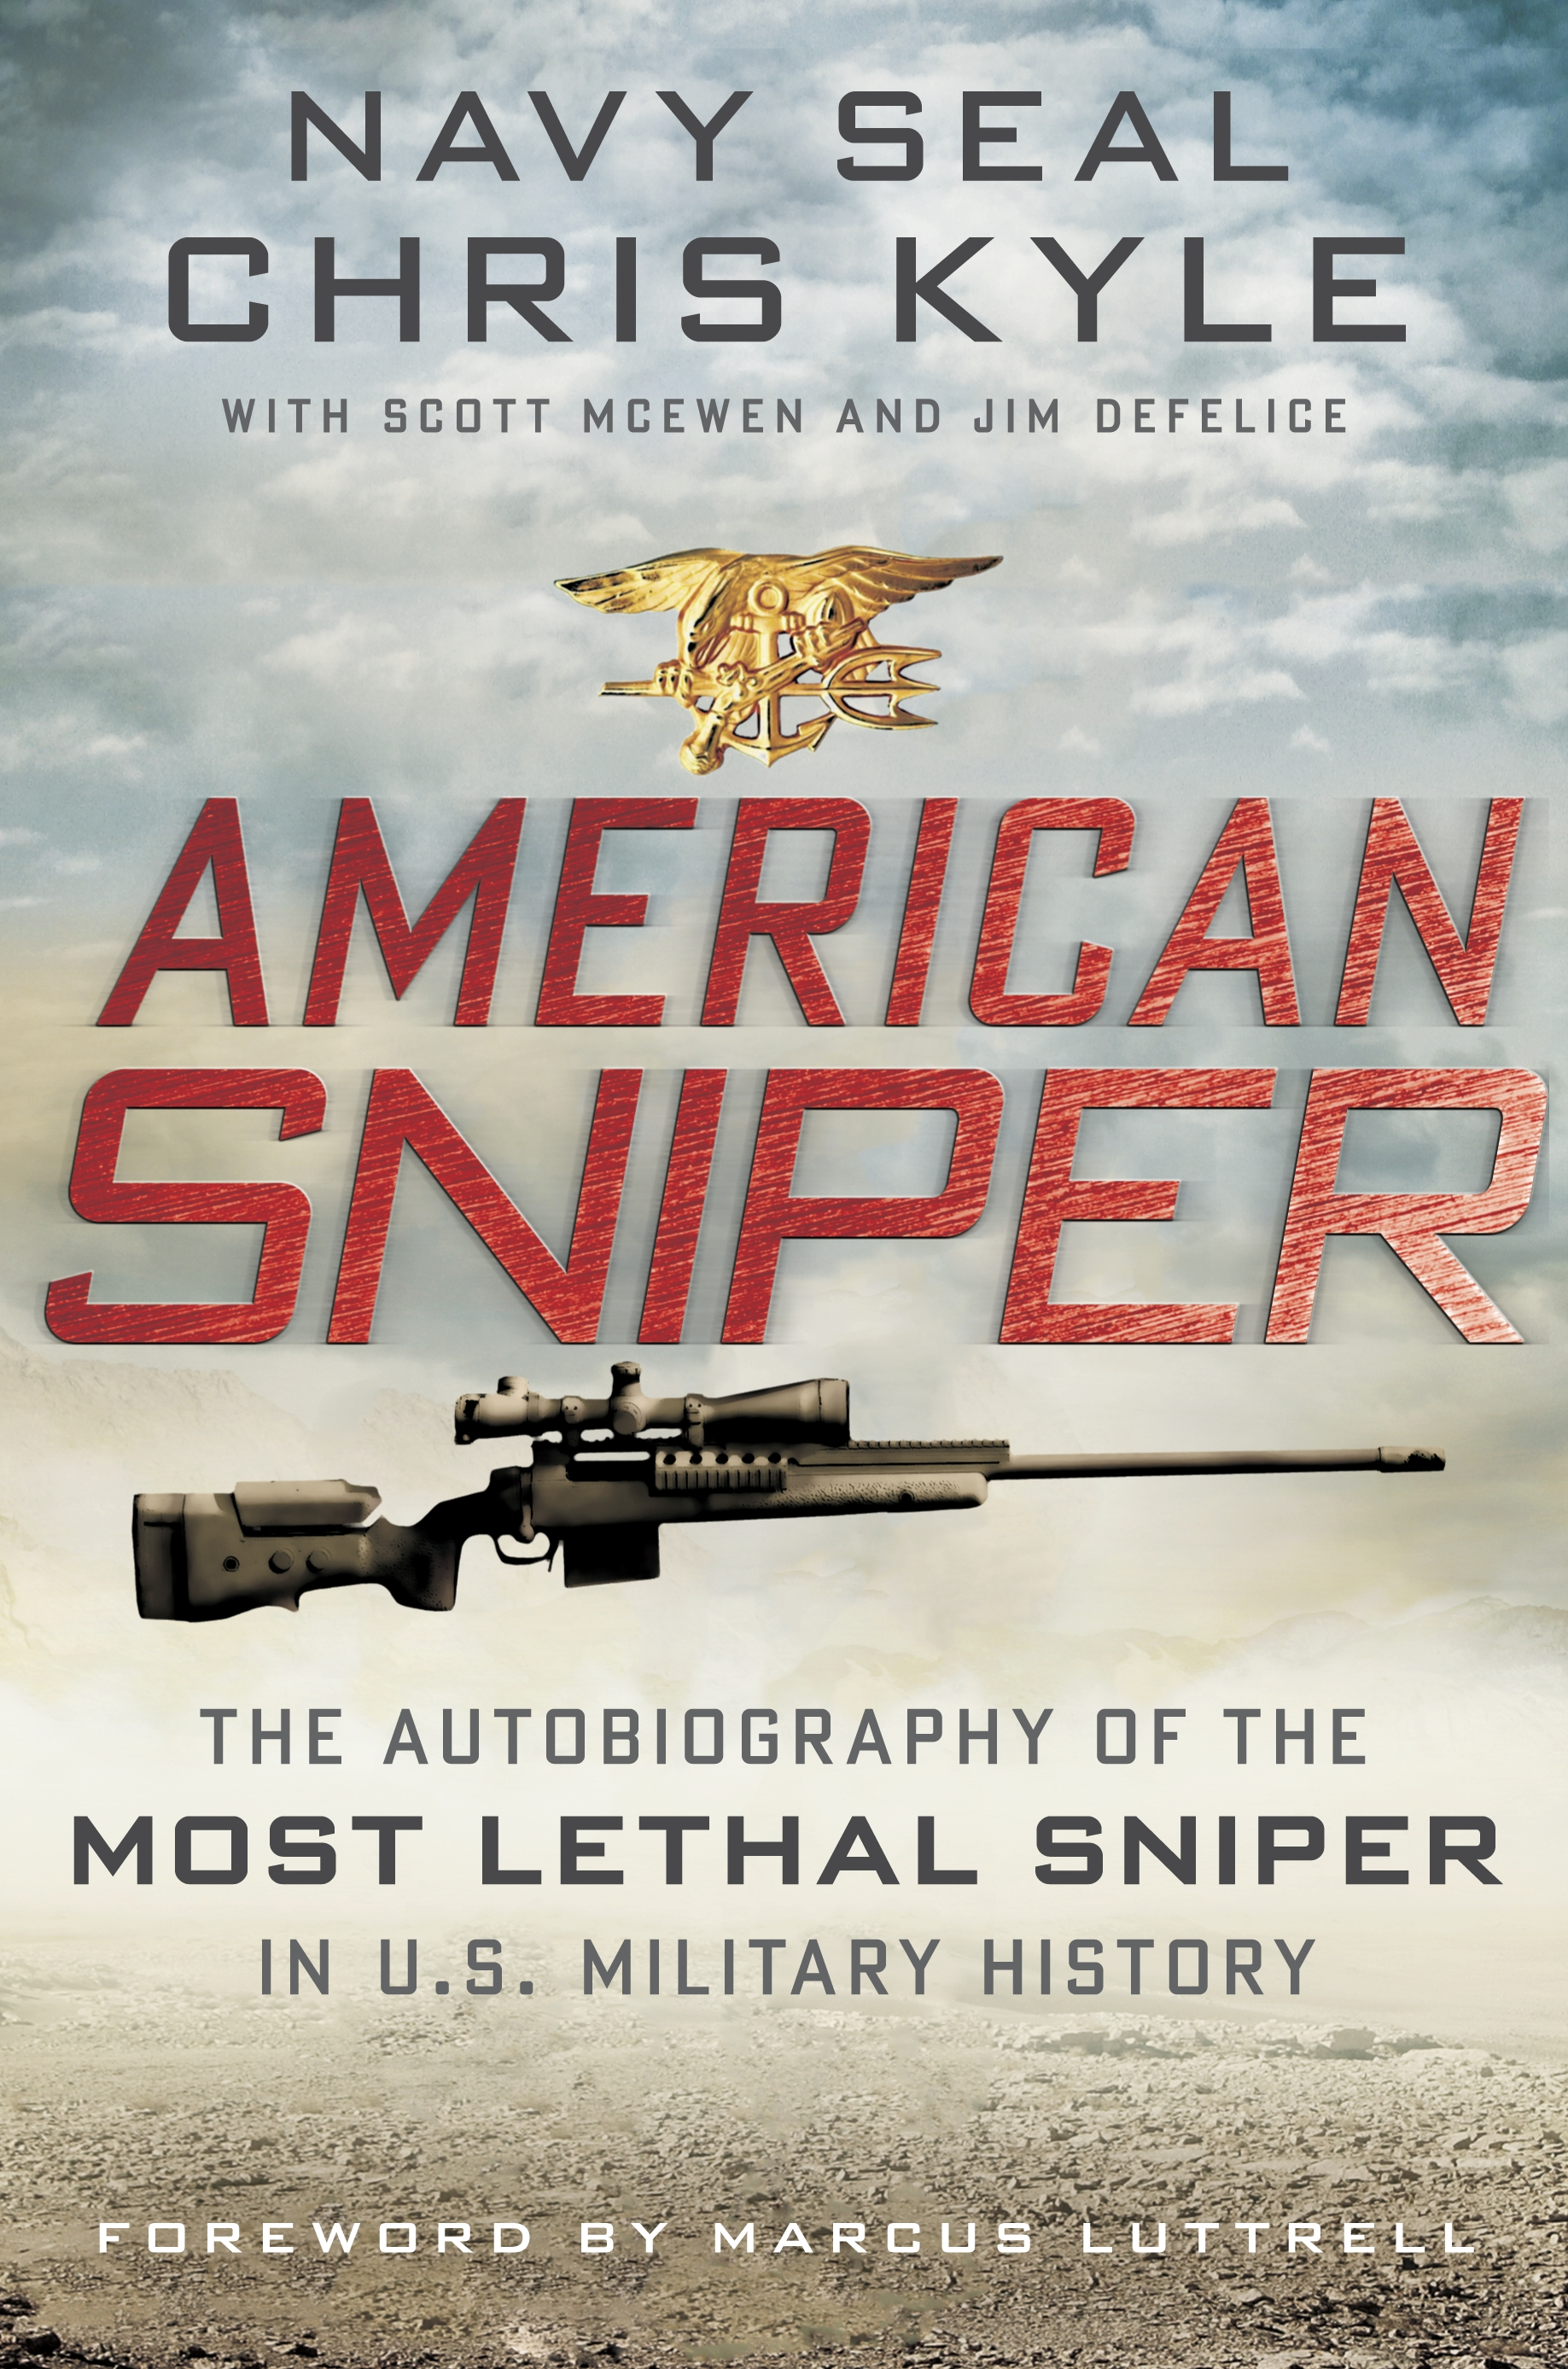 """american sniper by chris kyle summative essay essay """"the american sniper"""" by chris kyle is an account of the deadliest american  sniper ever, called """"the devil"""" by the enemies he hunted and """"the legend"""" by his."""